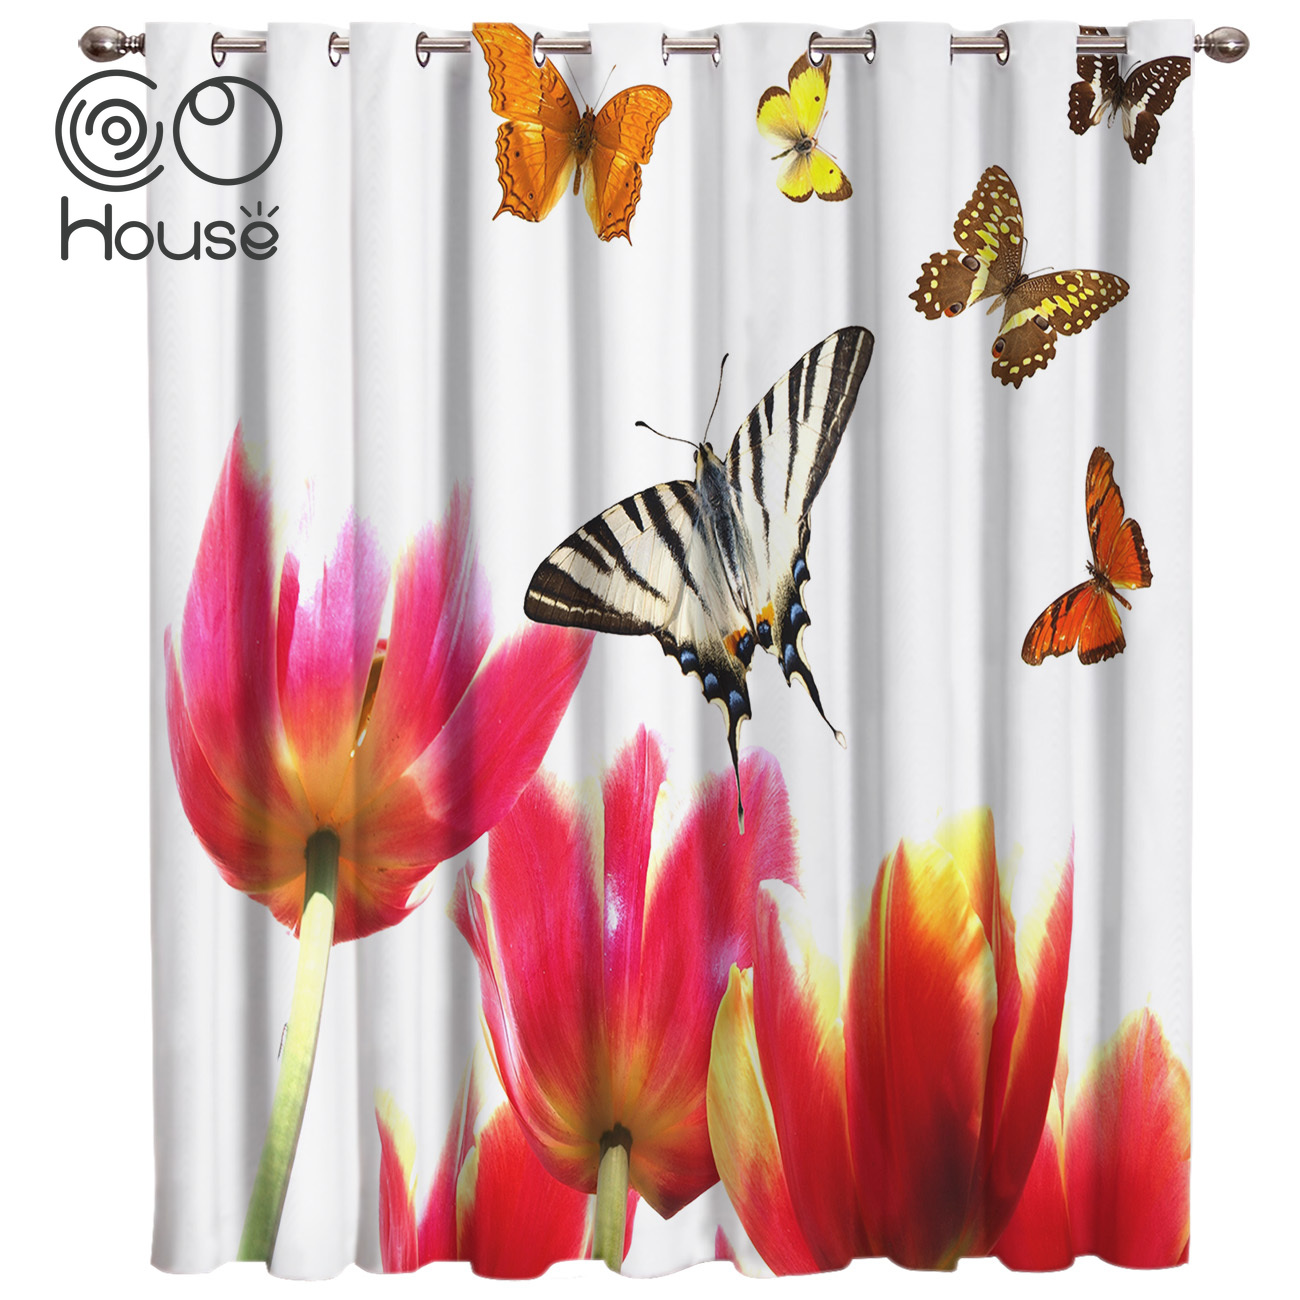 Insects Butterflies And Flowers Curtains Bathroom Outdoor Decor Kids Curtain Panels With Grommets Window Treatment